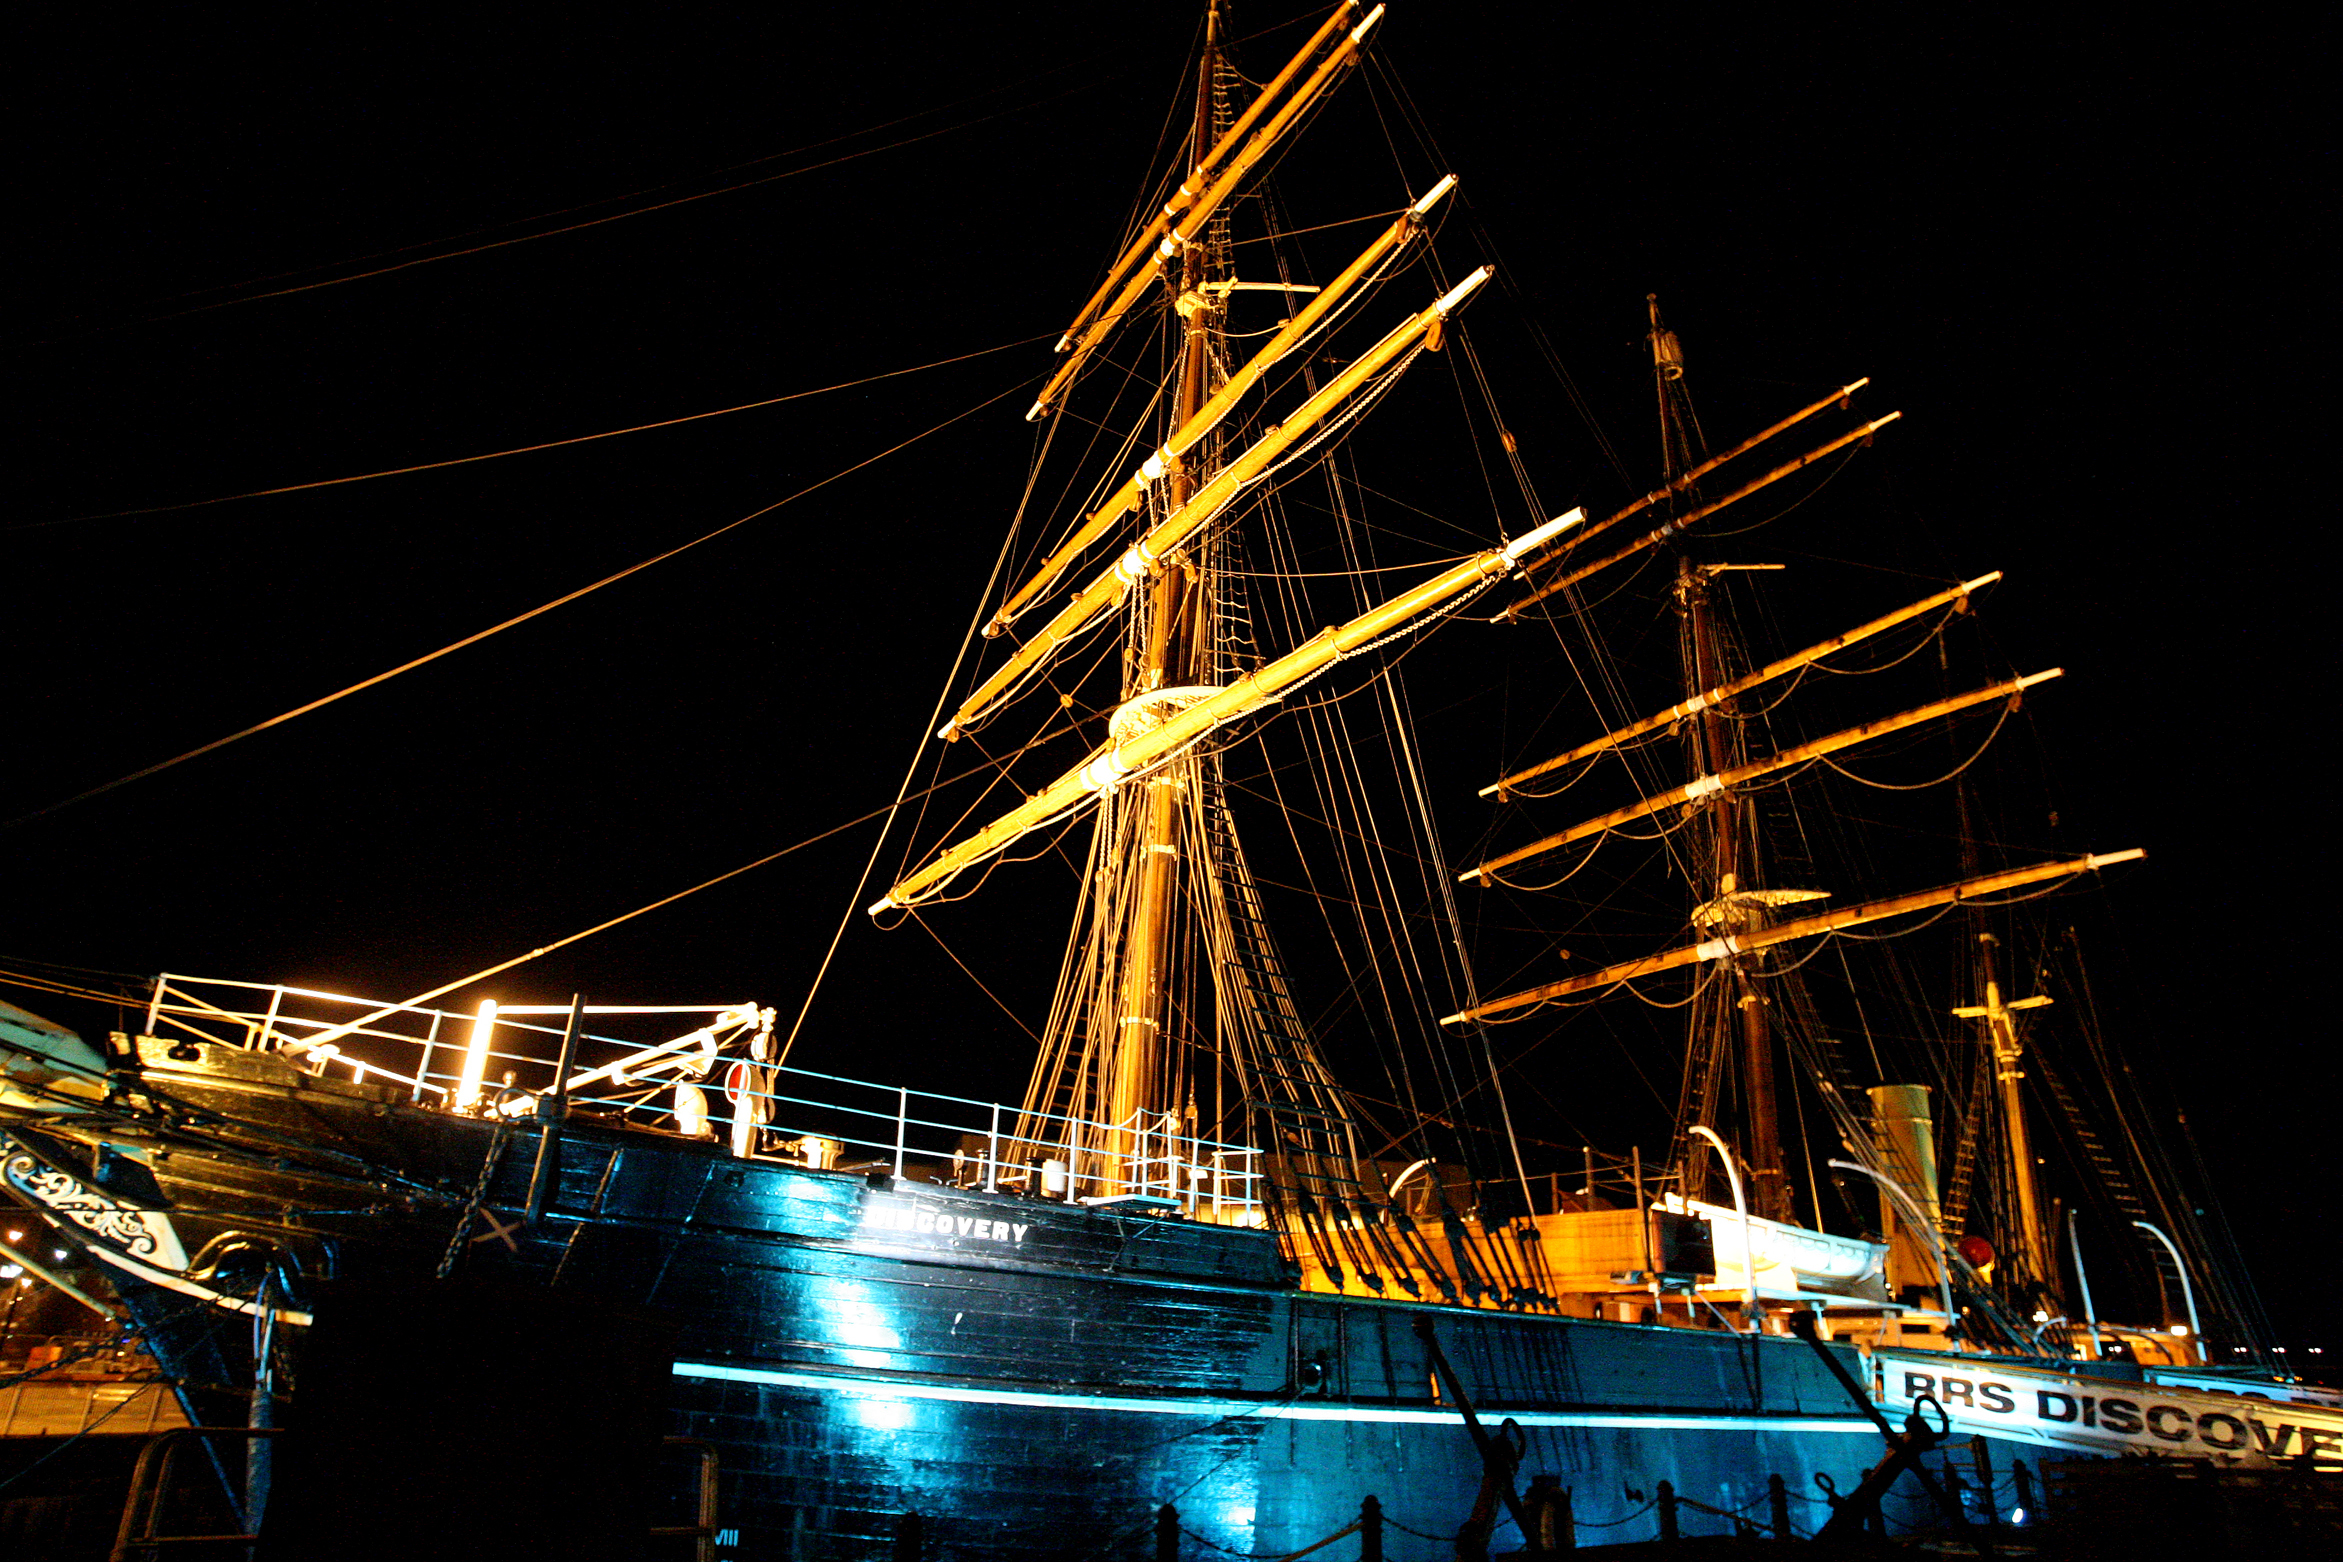 How the RRS Discovery has looked at night in days gone by.